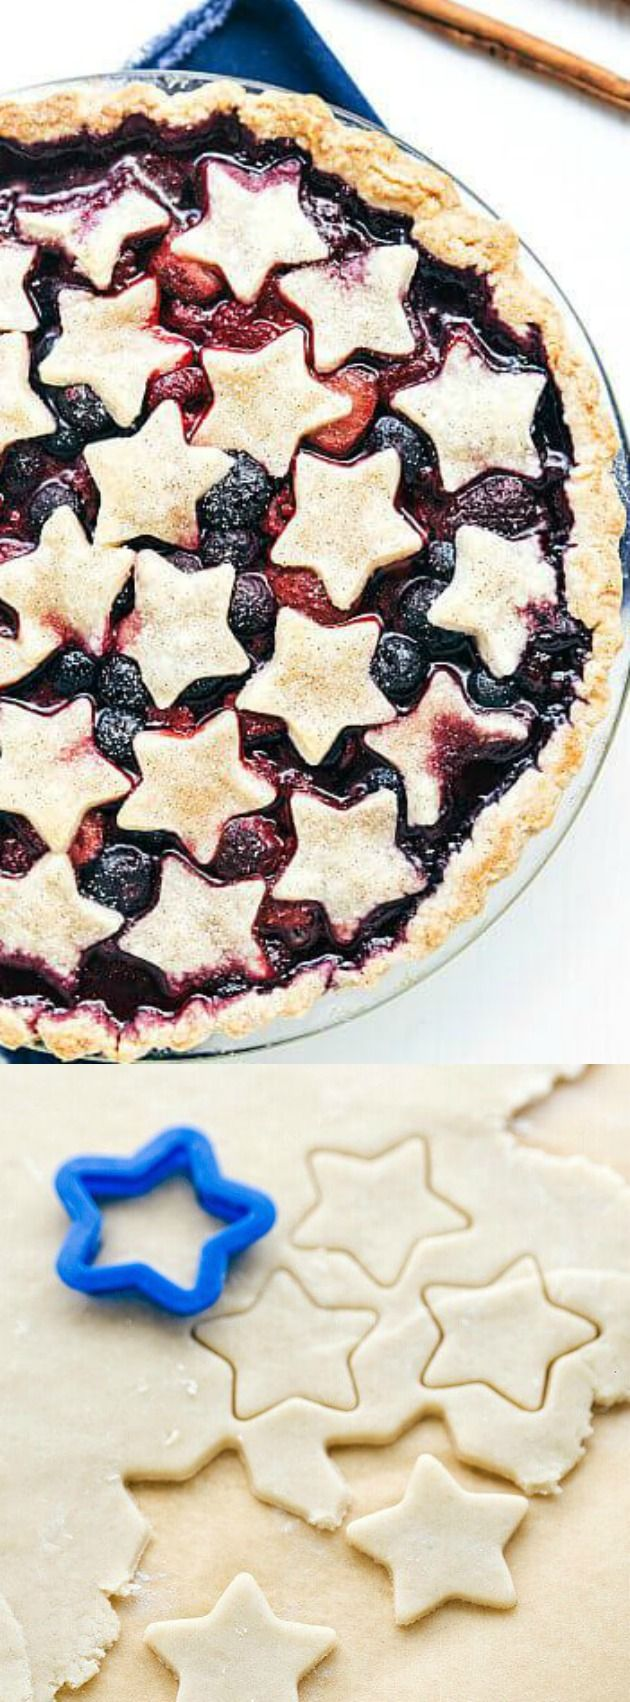 This Triple Berry Pie from The Recipe Critic is a fun patriotic dessert that is perfect for your summer get-togethers! It's made with simple ingredients and a star patterned crust which will make it a favorite anywhere you take it!